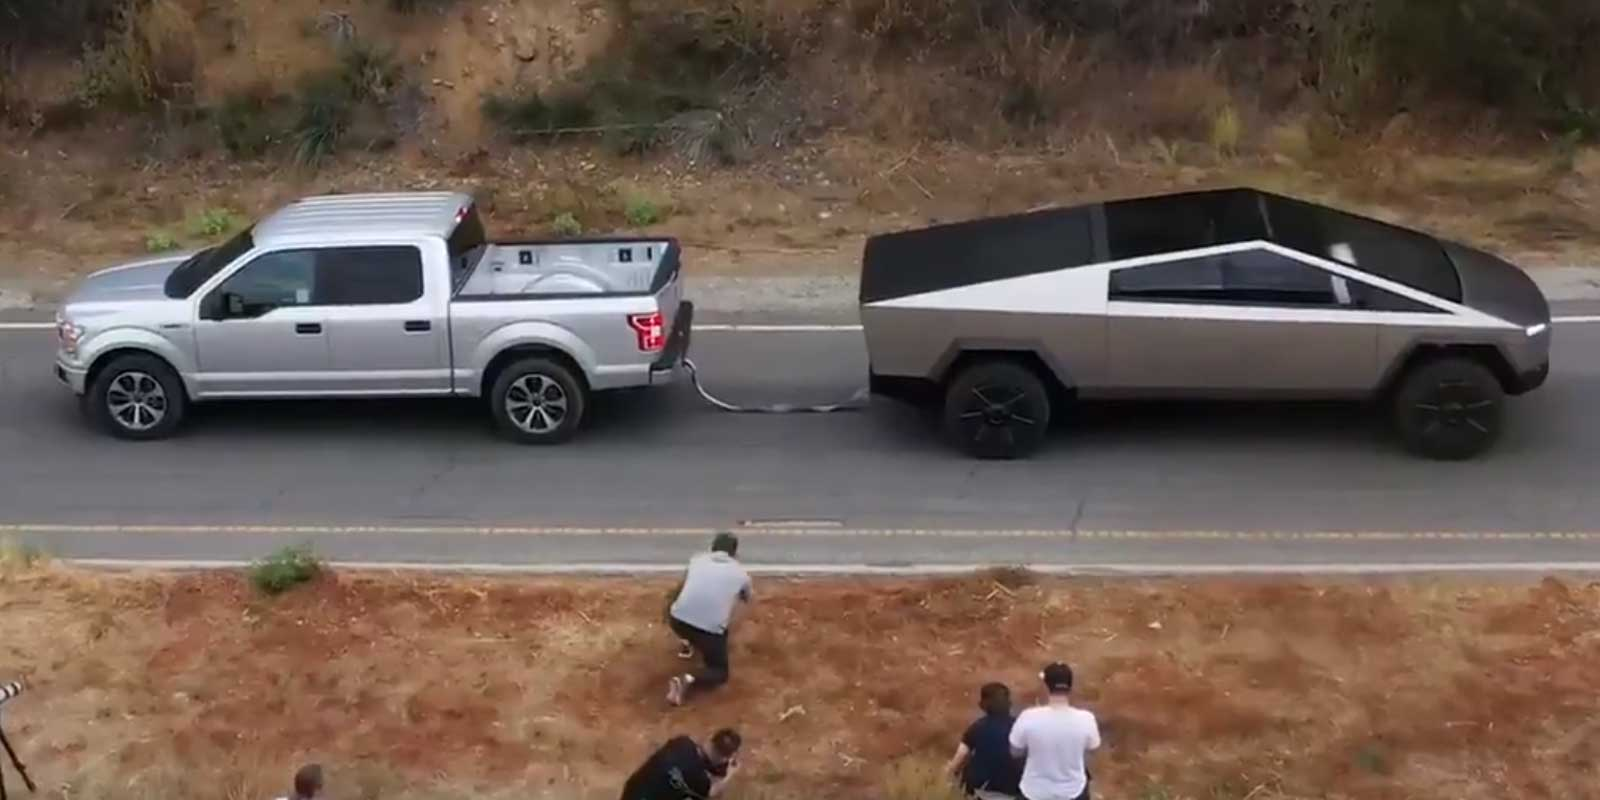 Tesla Cybertruck and Ford F-150 tug-of-war